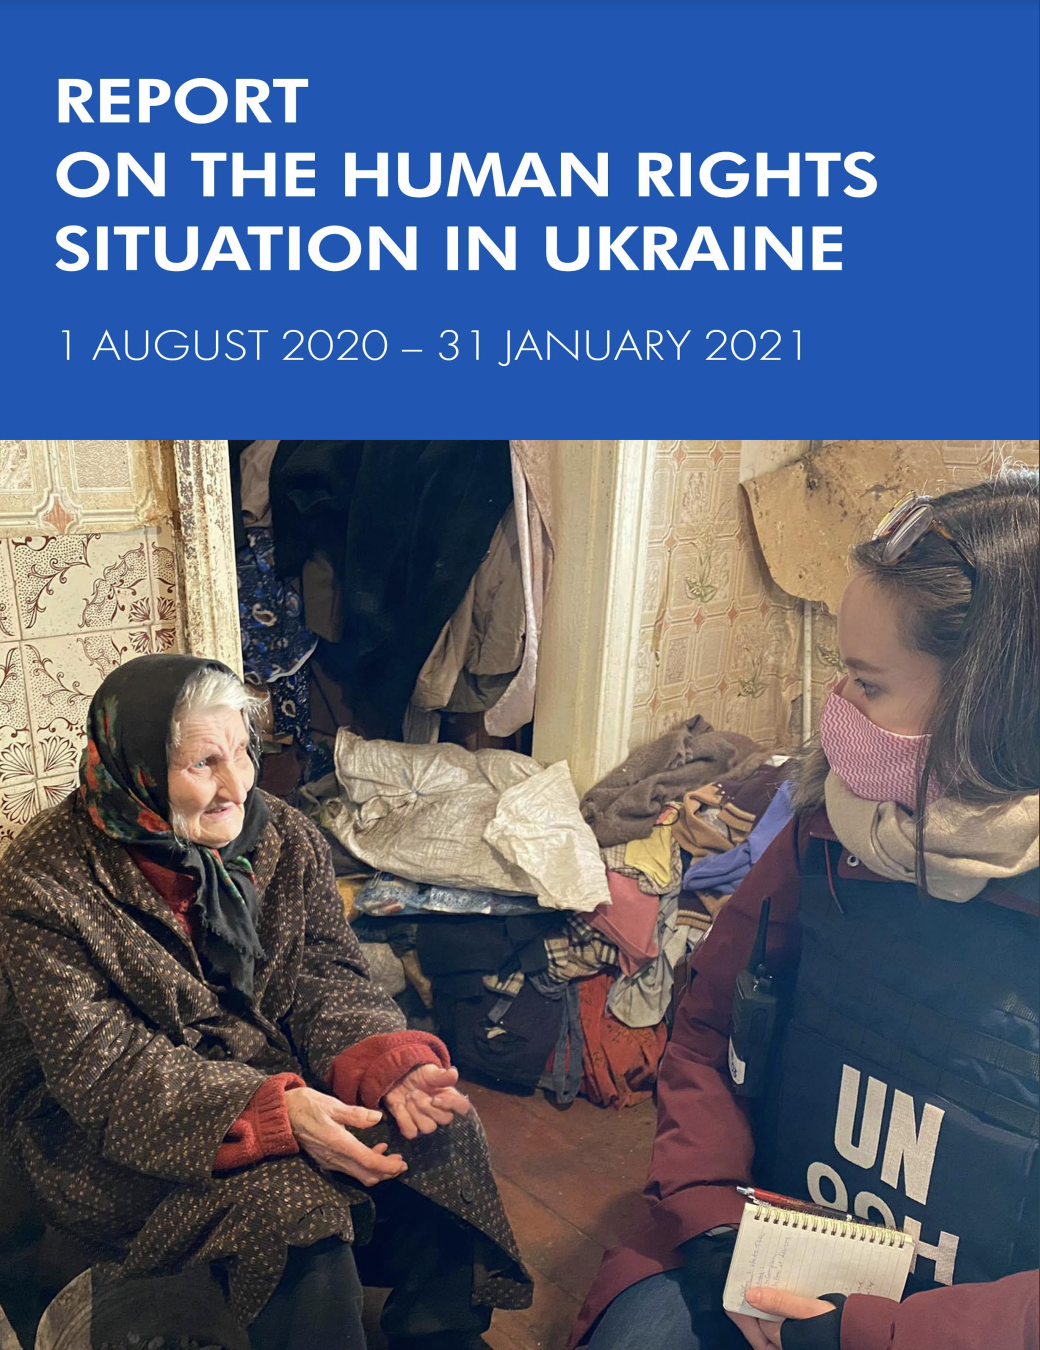 Report on the Human Rights situation in Ukraine